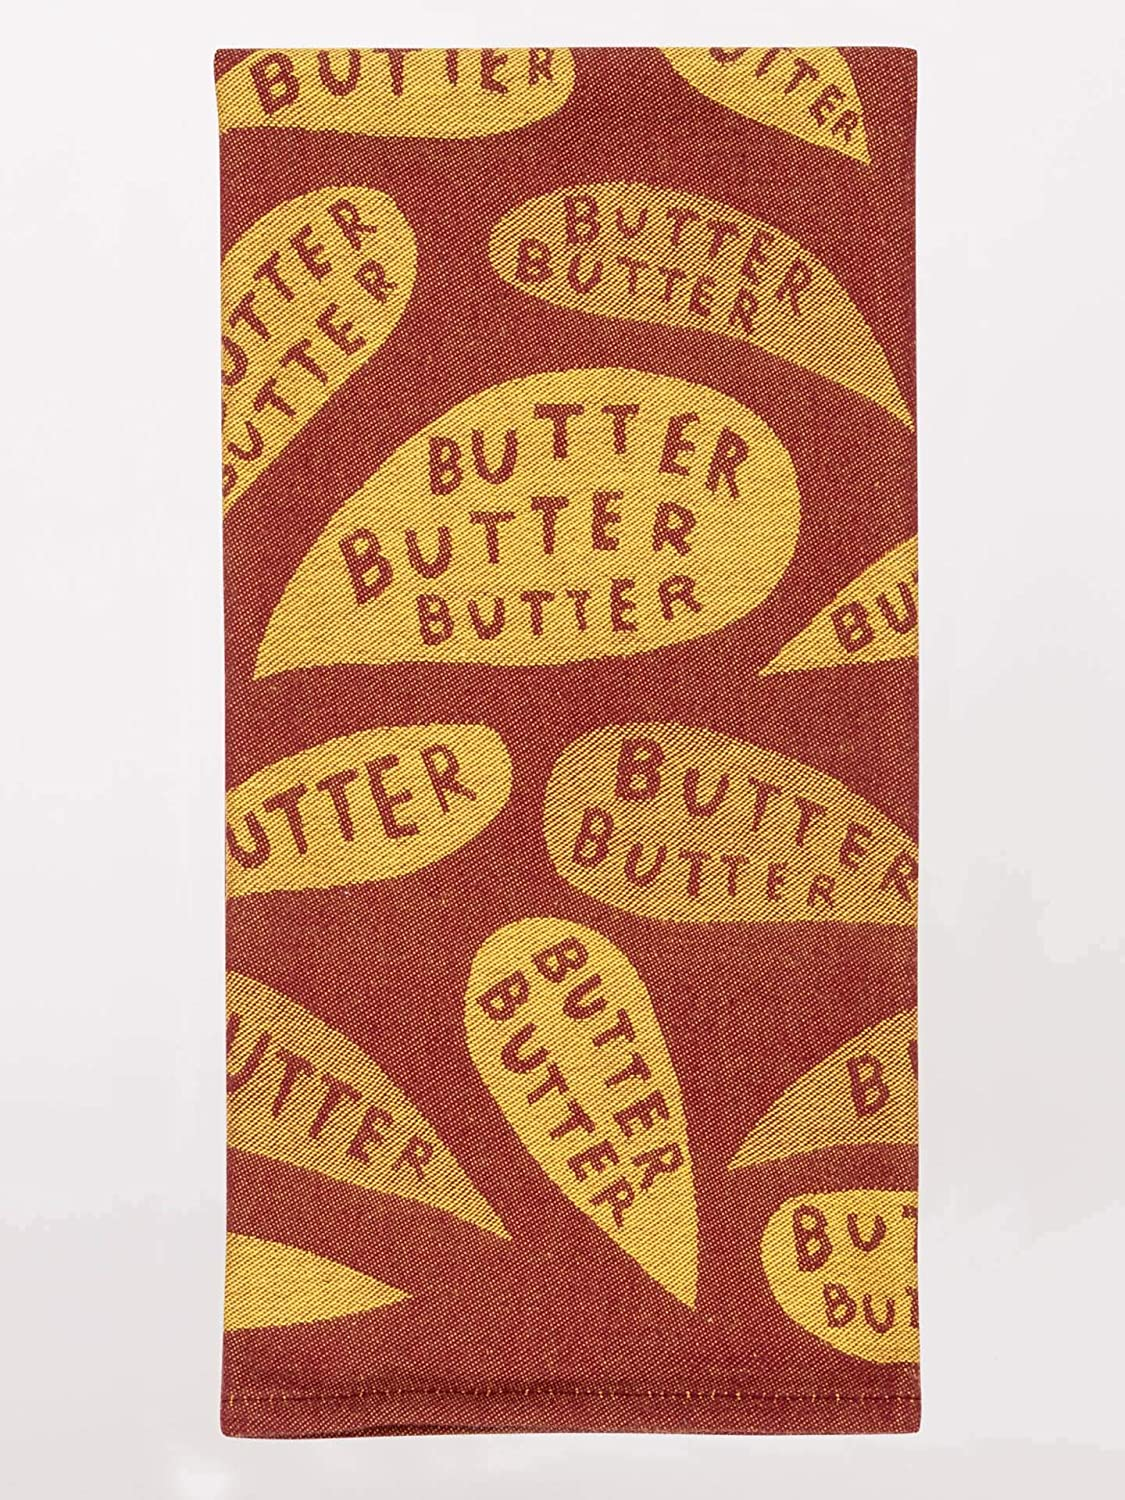 Blue Q Dish Towel, Butter Butter Butter, 100% Cotton, 28 by 21 Inches (WW616)